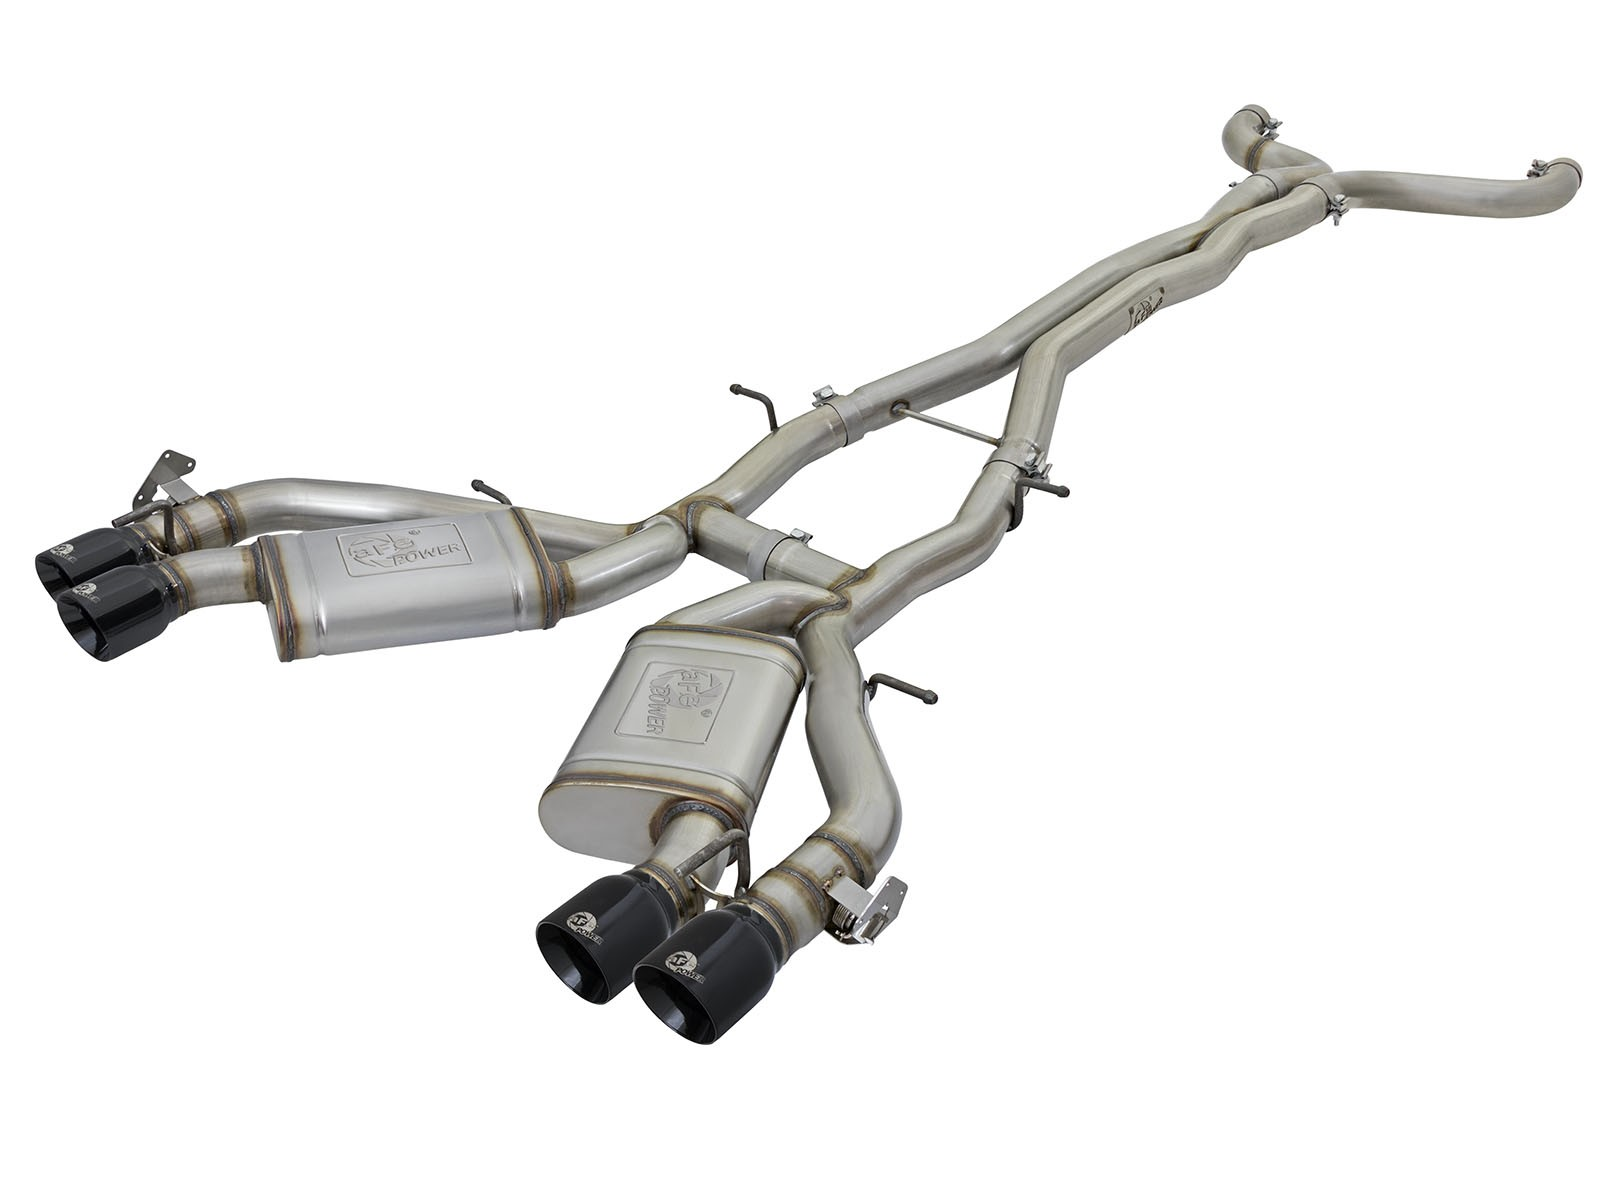 "aFe POWER 49-34069-B MACH Force-Xp 3"" 304 Stainless Steel Cat-Back Exhaust System"